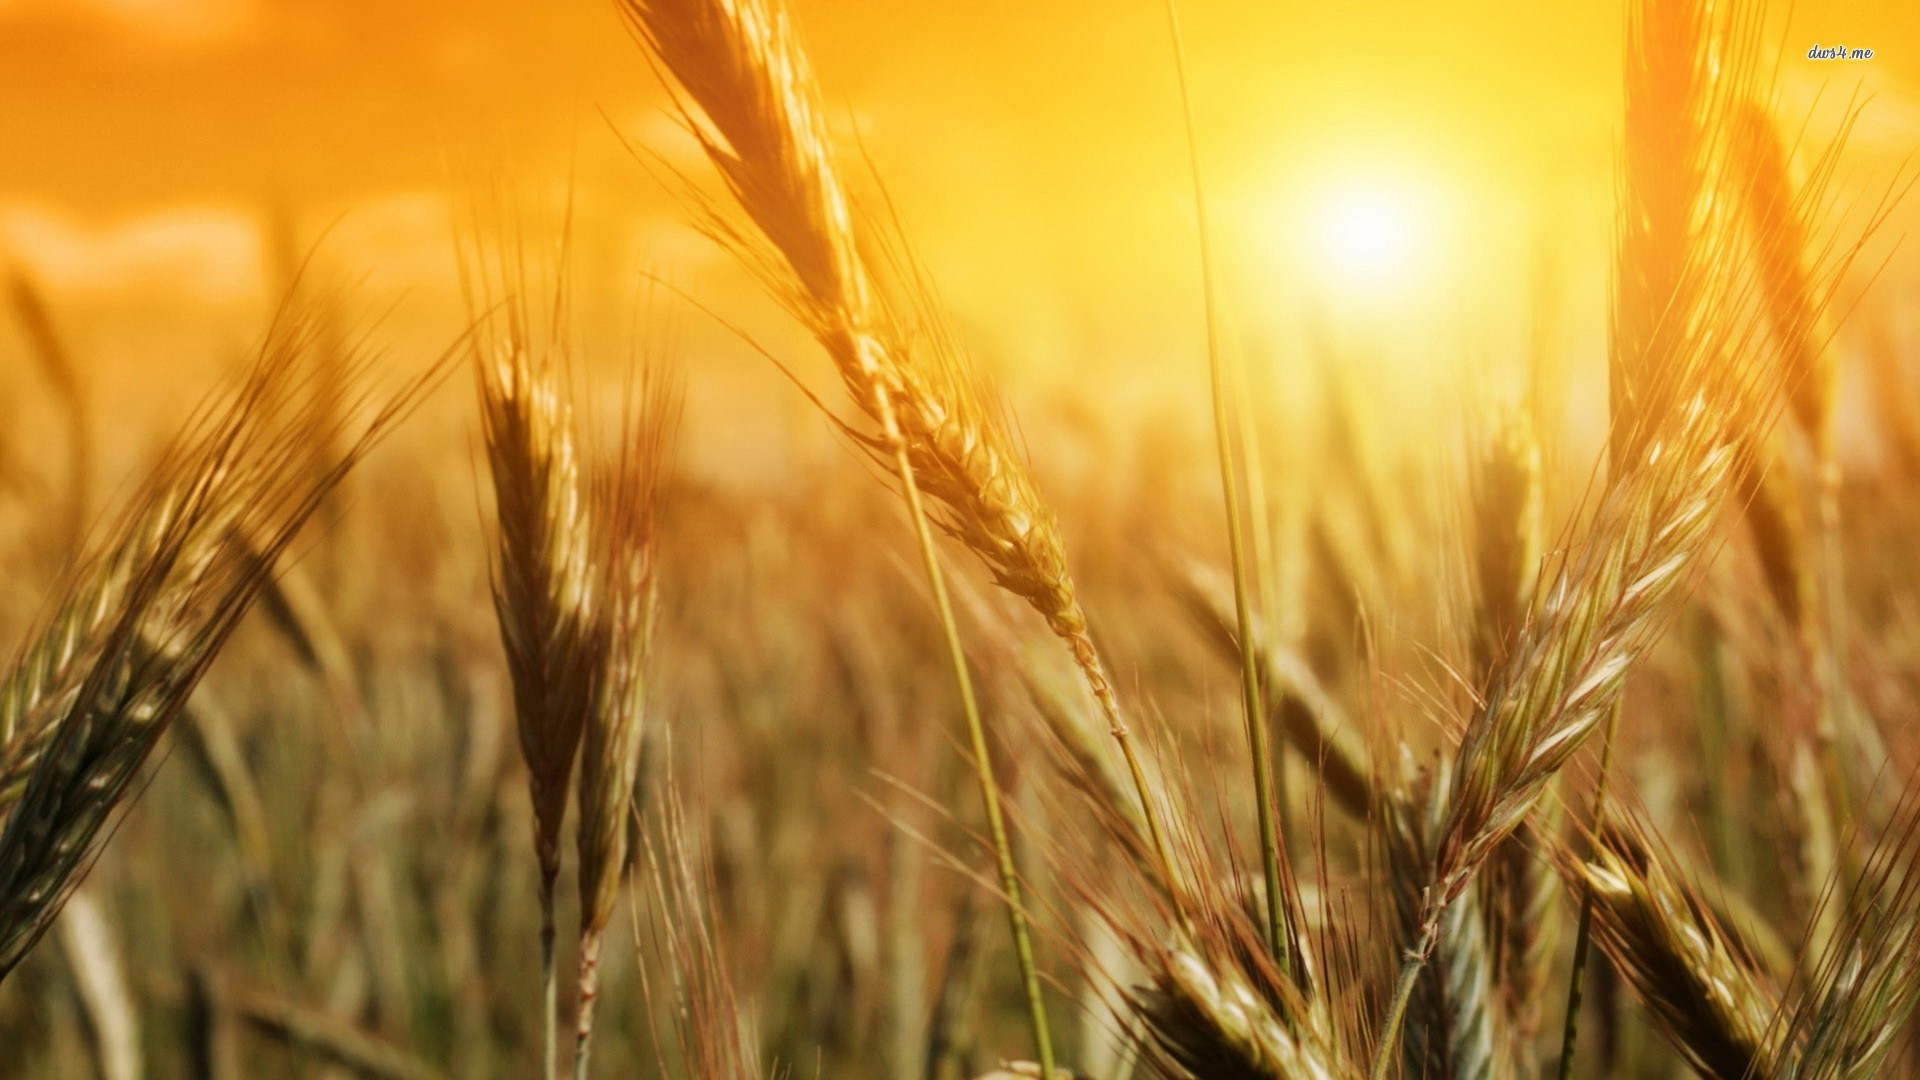 ... Wheat in the sun wallpaper 1920x1080 ...